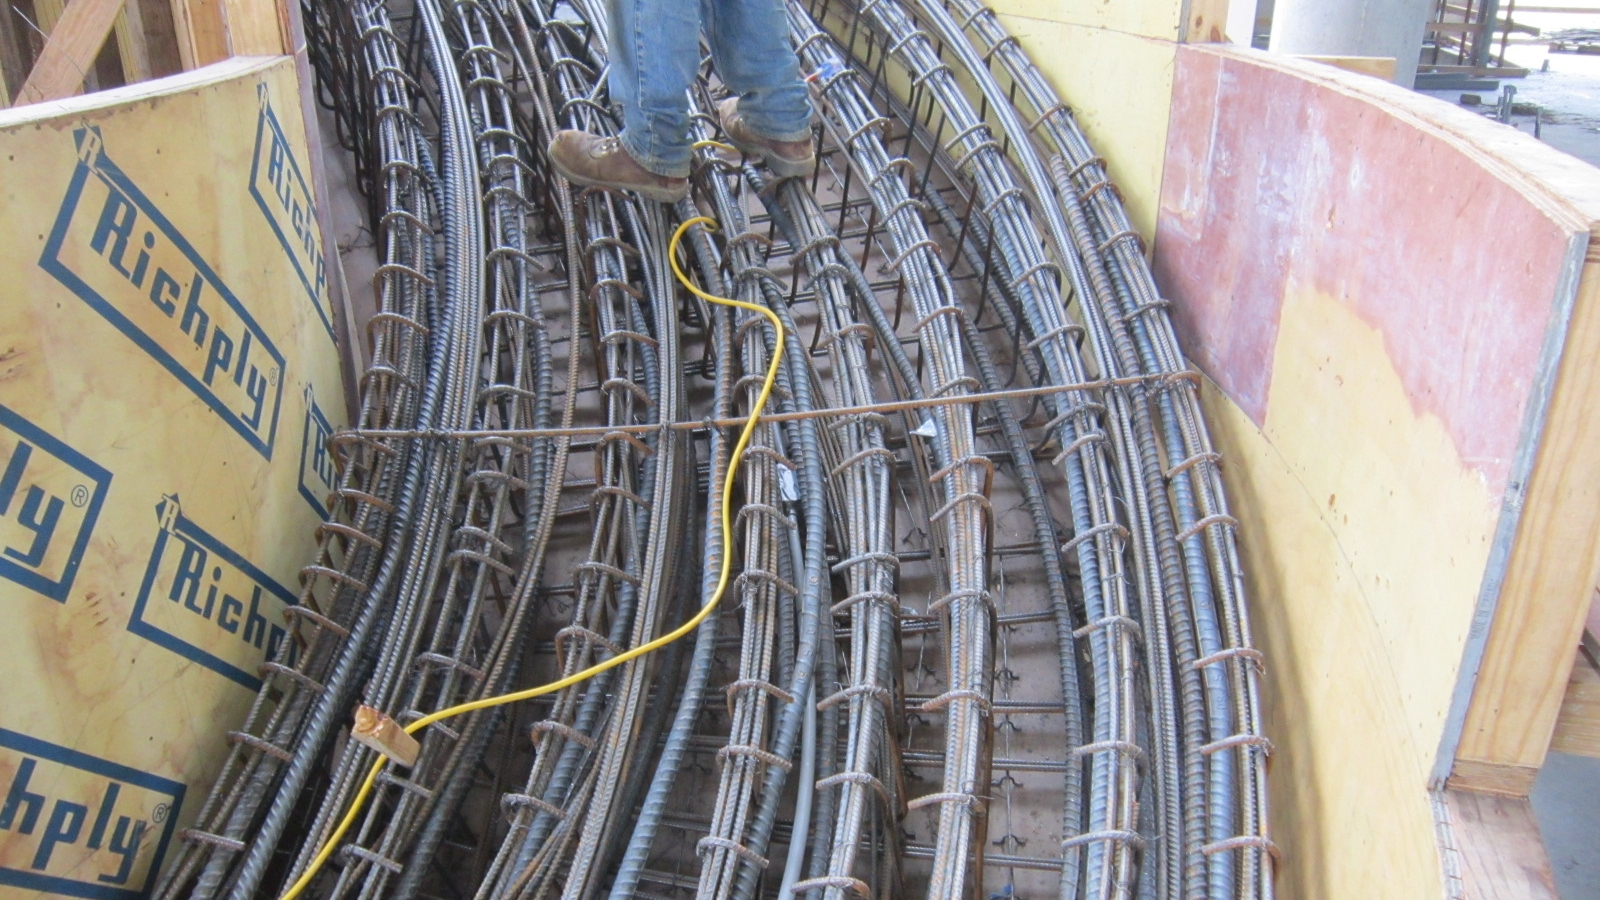 Rebar reinforcment inside the stairs